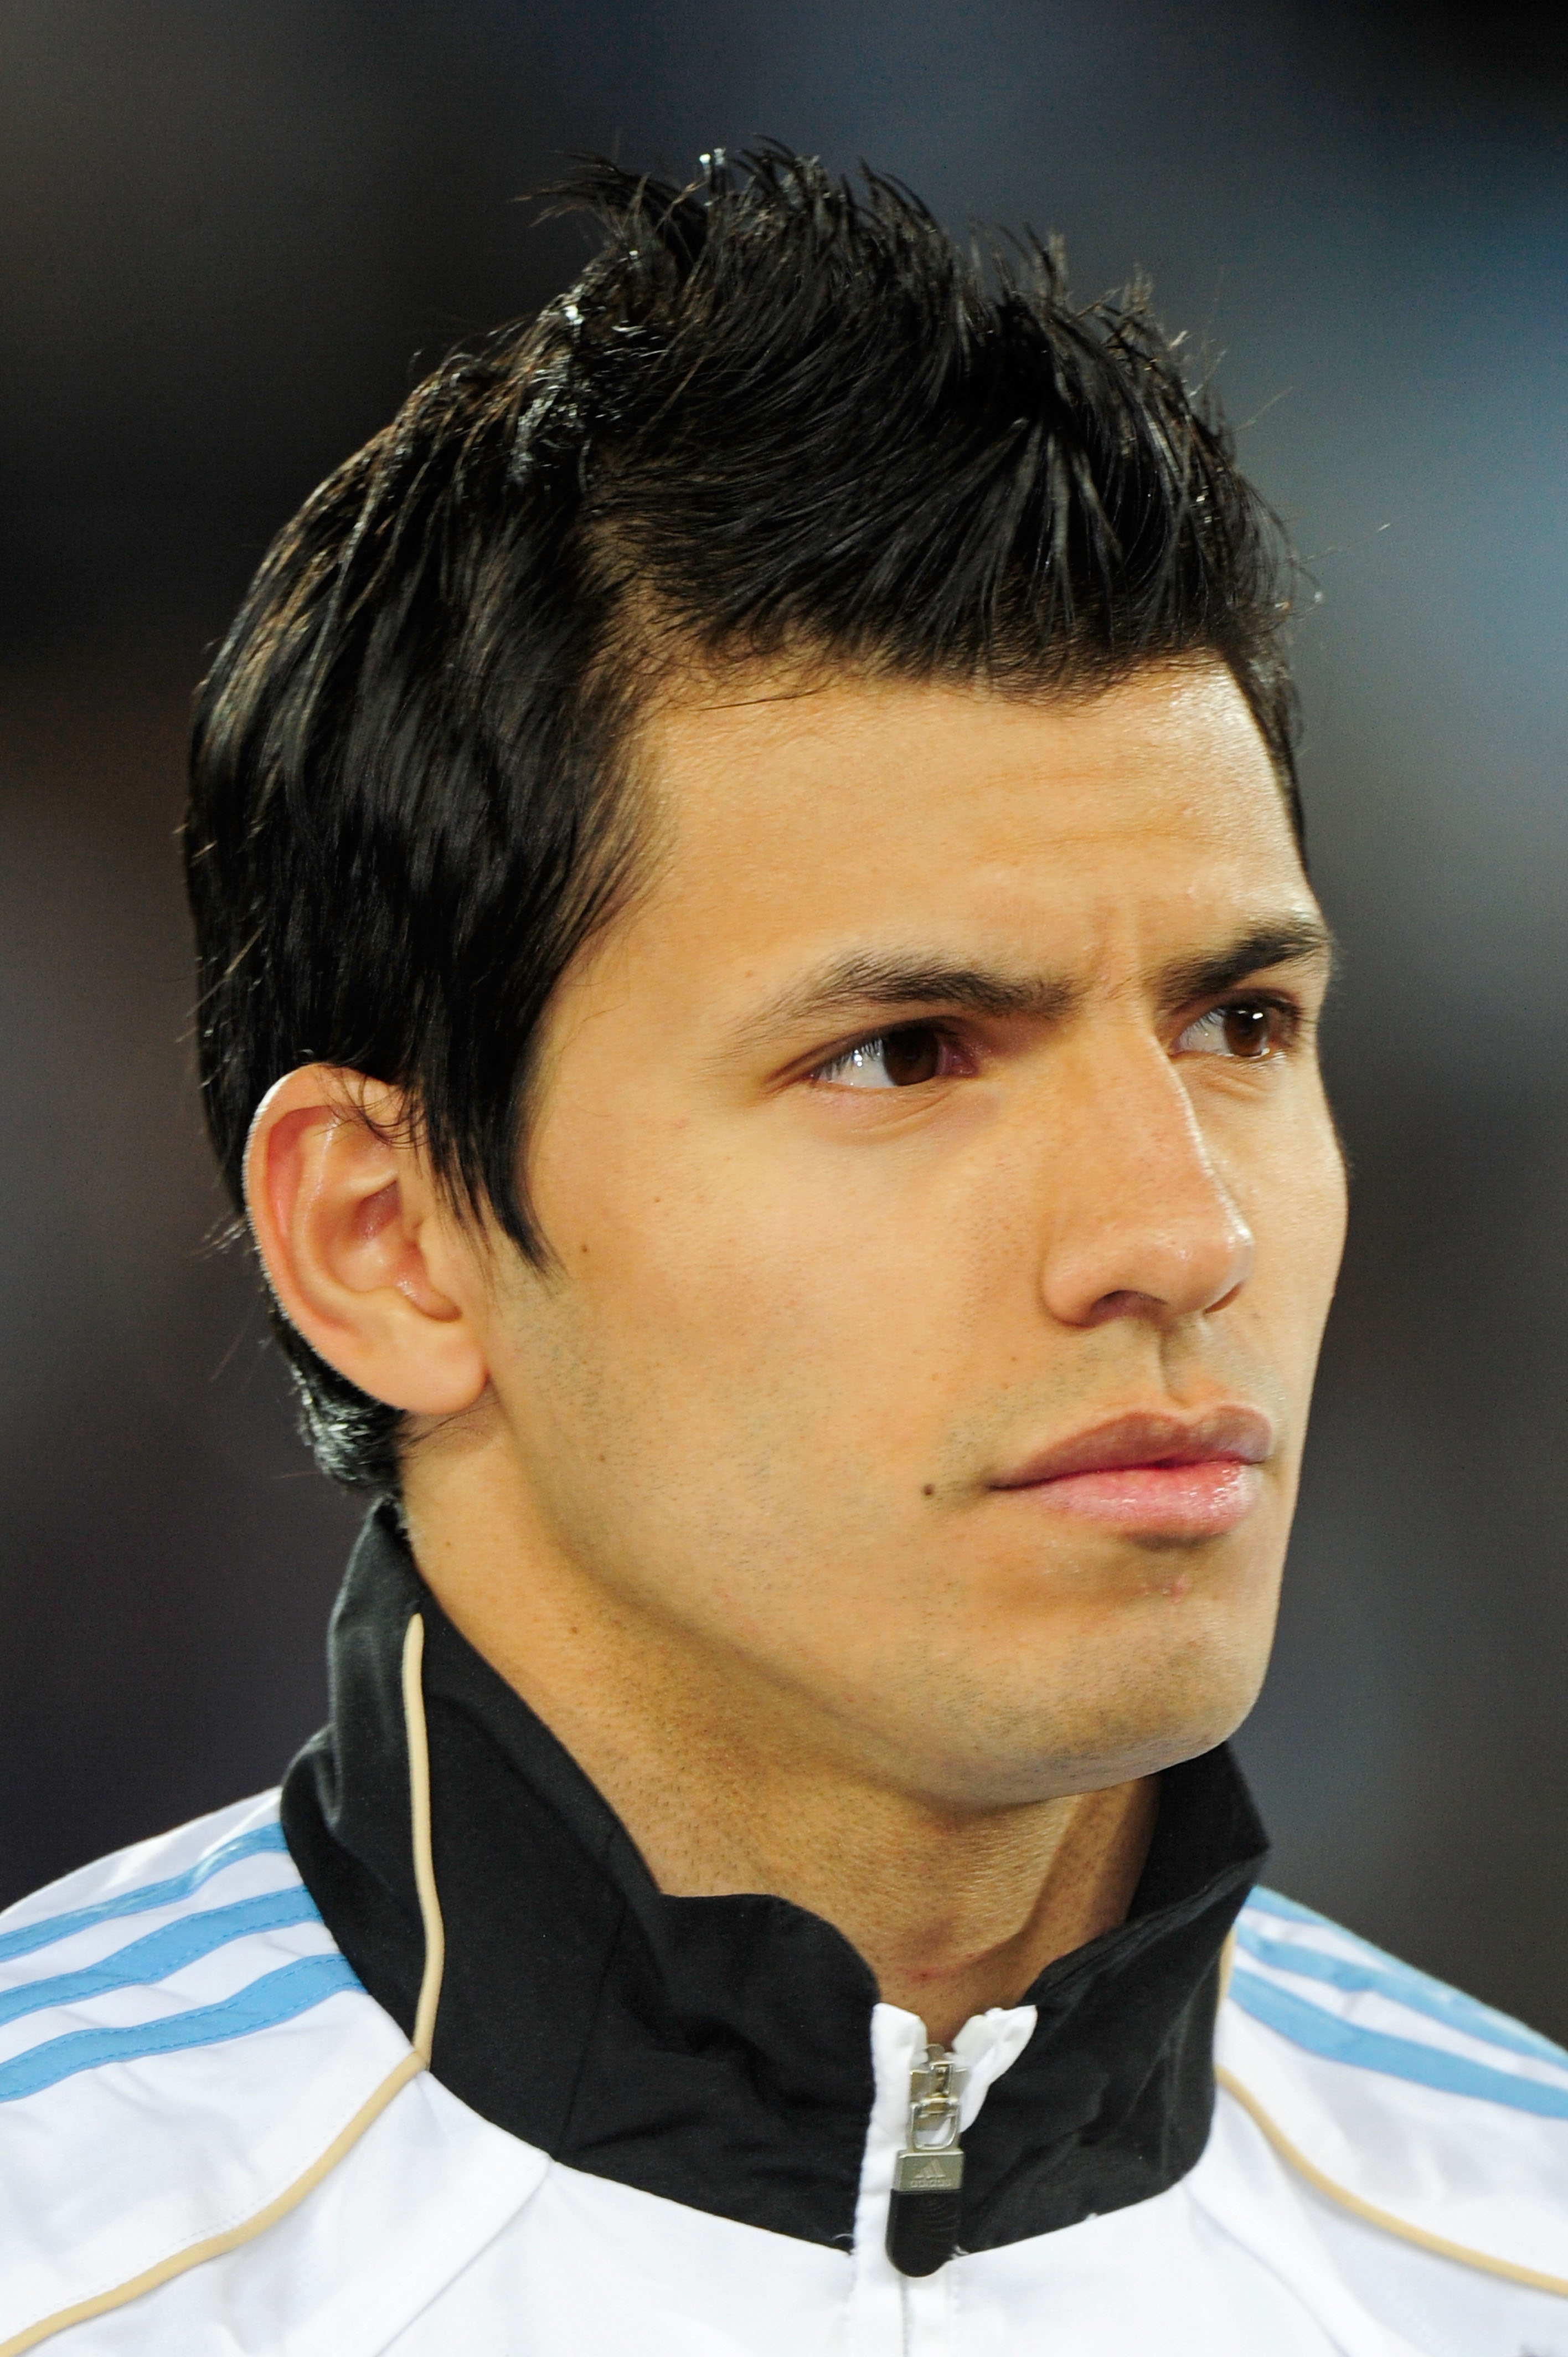 POLOKWANE, SOUTH AFRICA - JUNE 22:  Sergio Aguero of Argentina lines up for the national anthems prior to the 2010 FIFA World Cup South Africa Group B match between Greece and Argentina at Peter Mokaba Stadium on June 22, 2010 in Polokwane, South Africa.